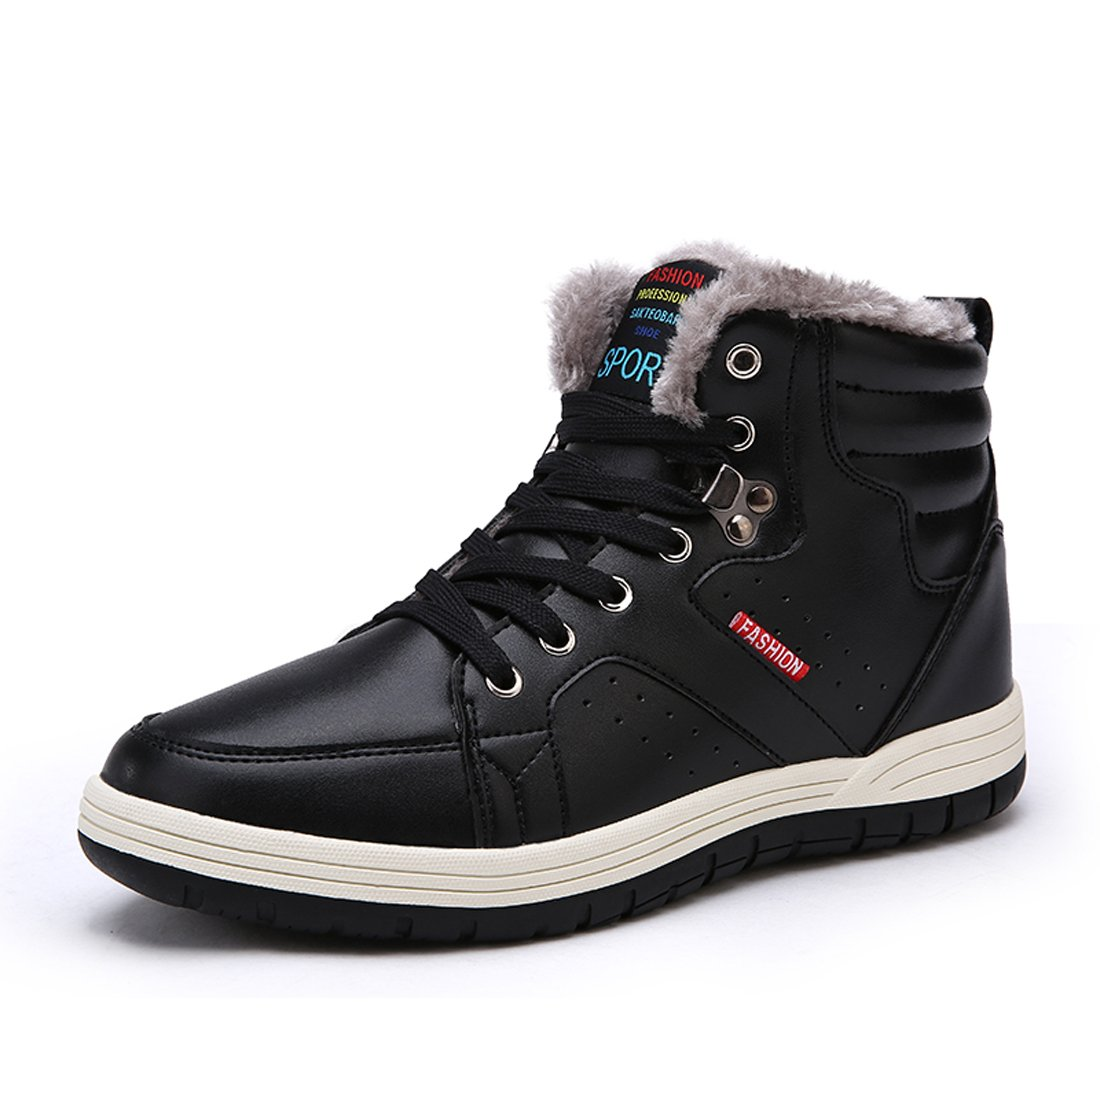 AFFINEST Mens Winter Snow Boots High Top Fur Lined Cotton Shoes Outdoor Sports Leather Sneakers for Walking Hiking Climbing(EU44, Black)